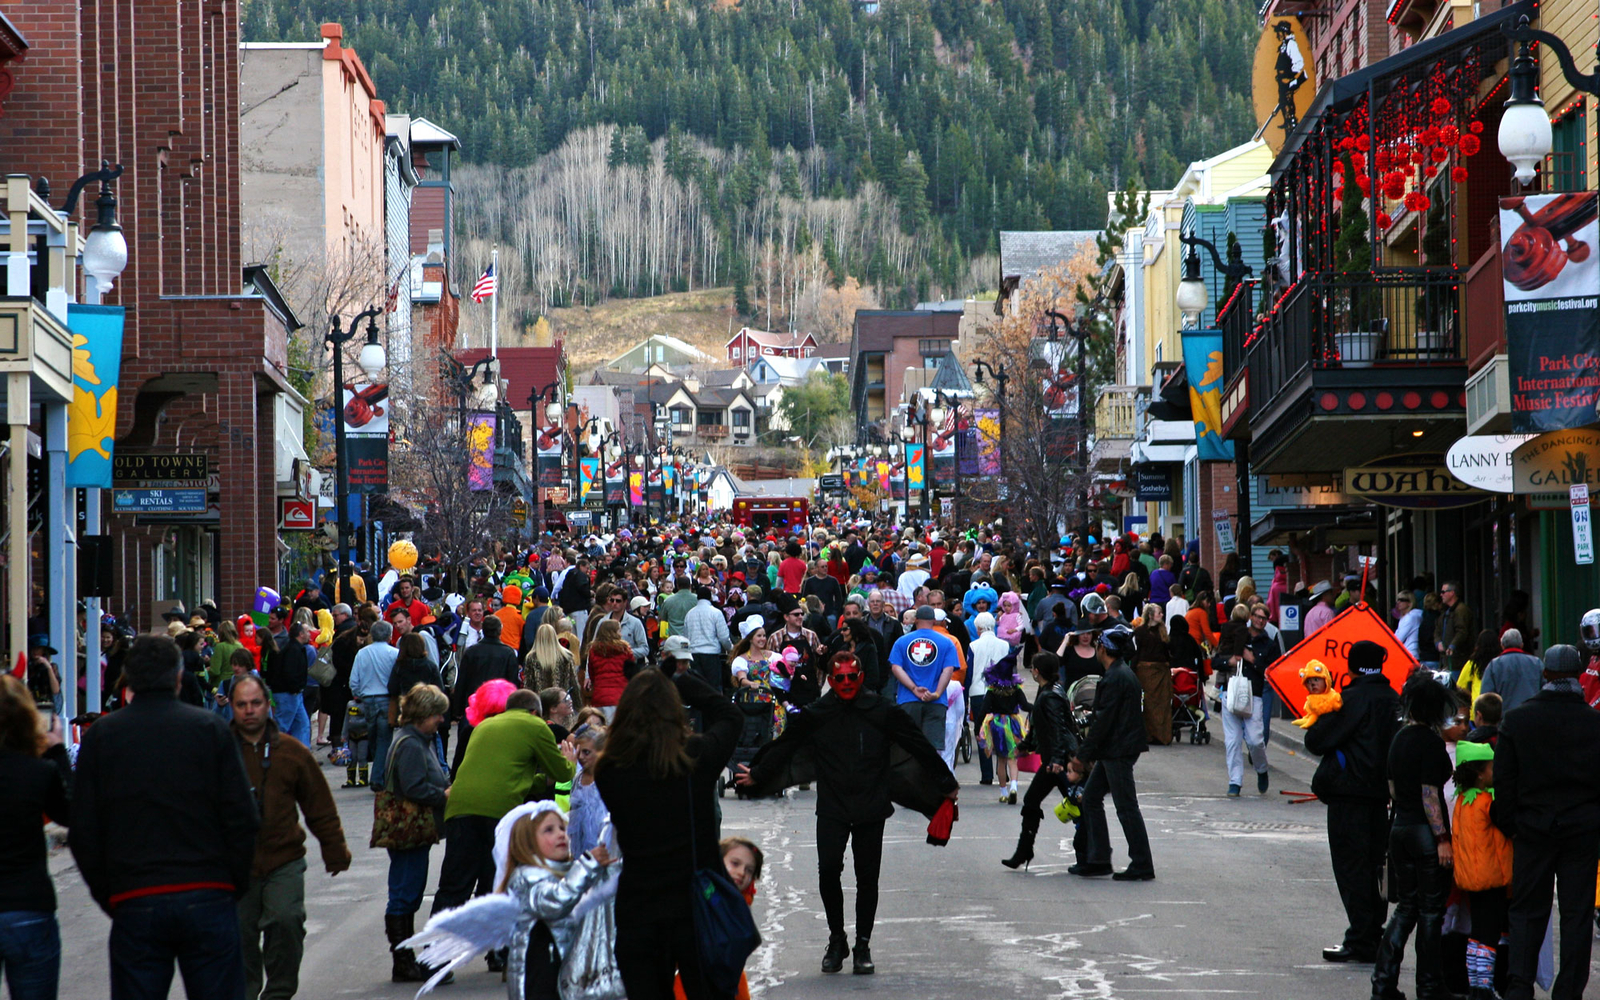 holloween parade in park city utah - Best Halloween Celebrations